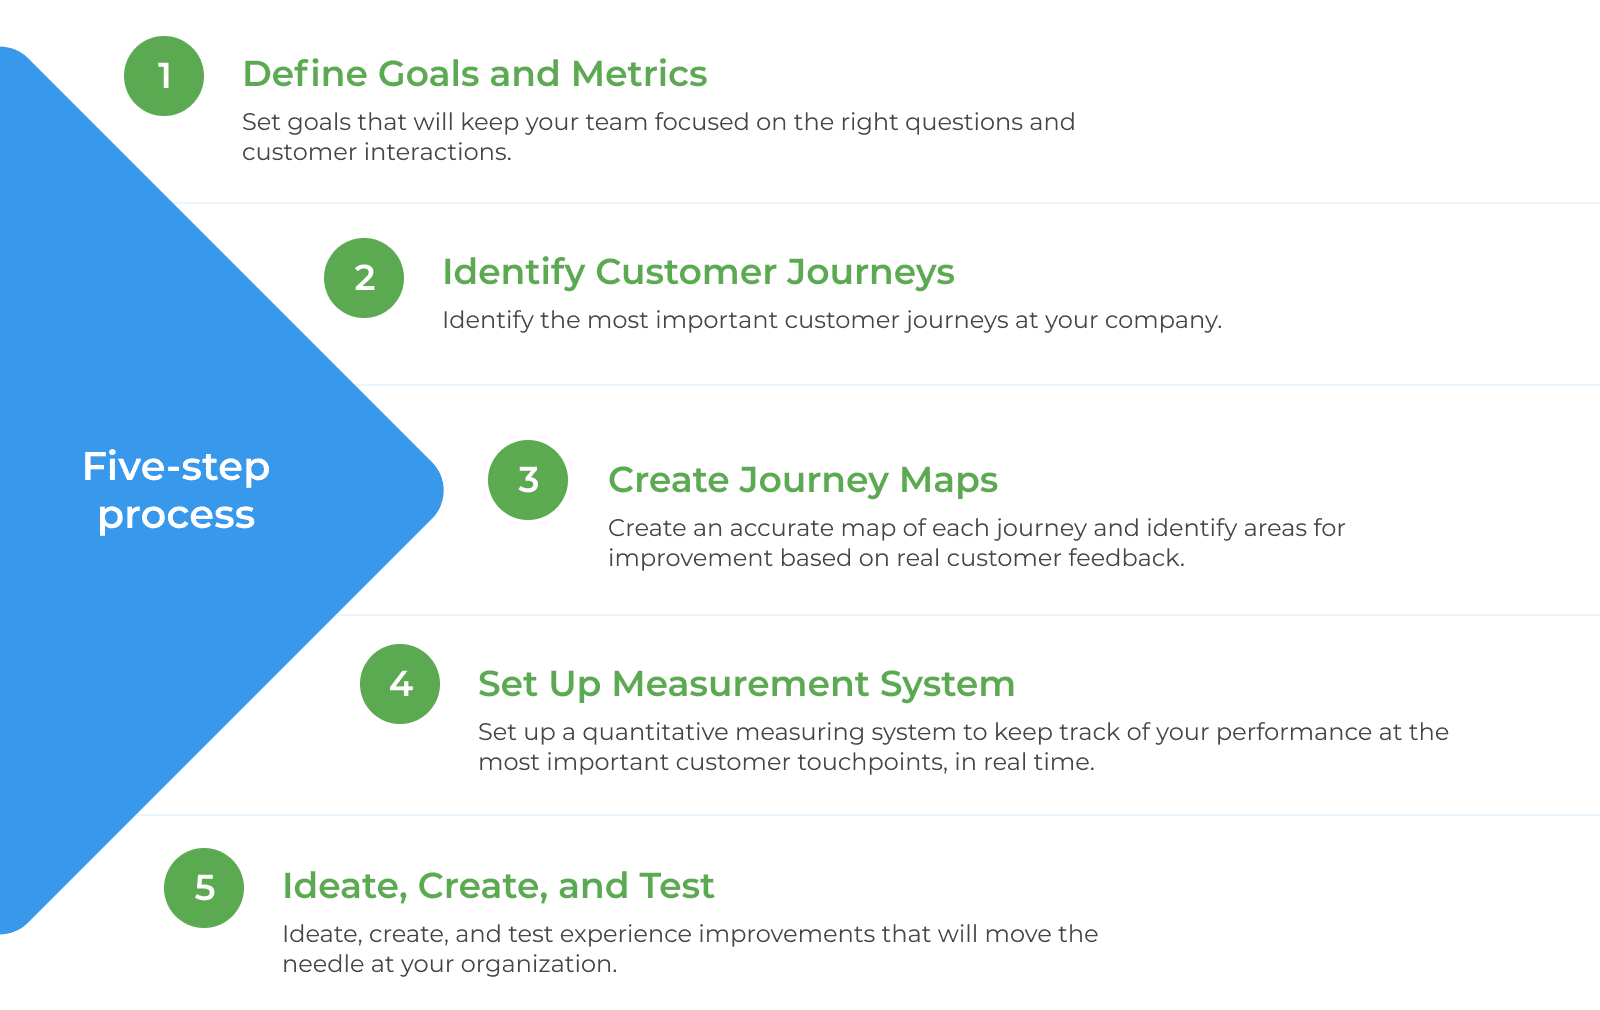 (1) Define Goals and Metrics (2) Identify Customer Journeys (3) Create Journey Maps (4) Set Up Measurement System (5) Ideate, Create, and Test.